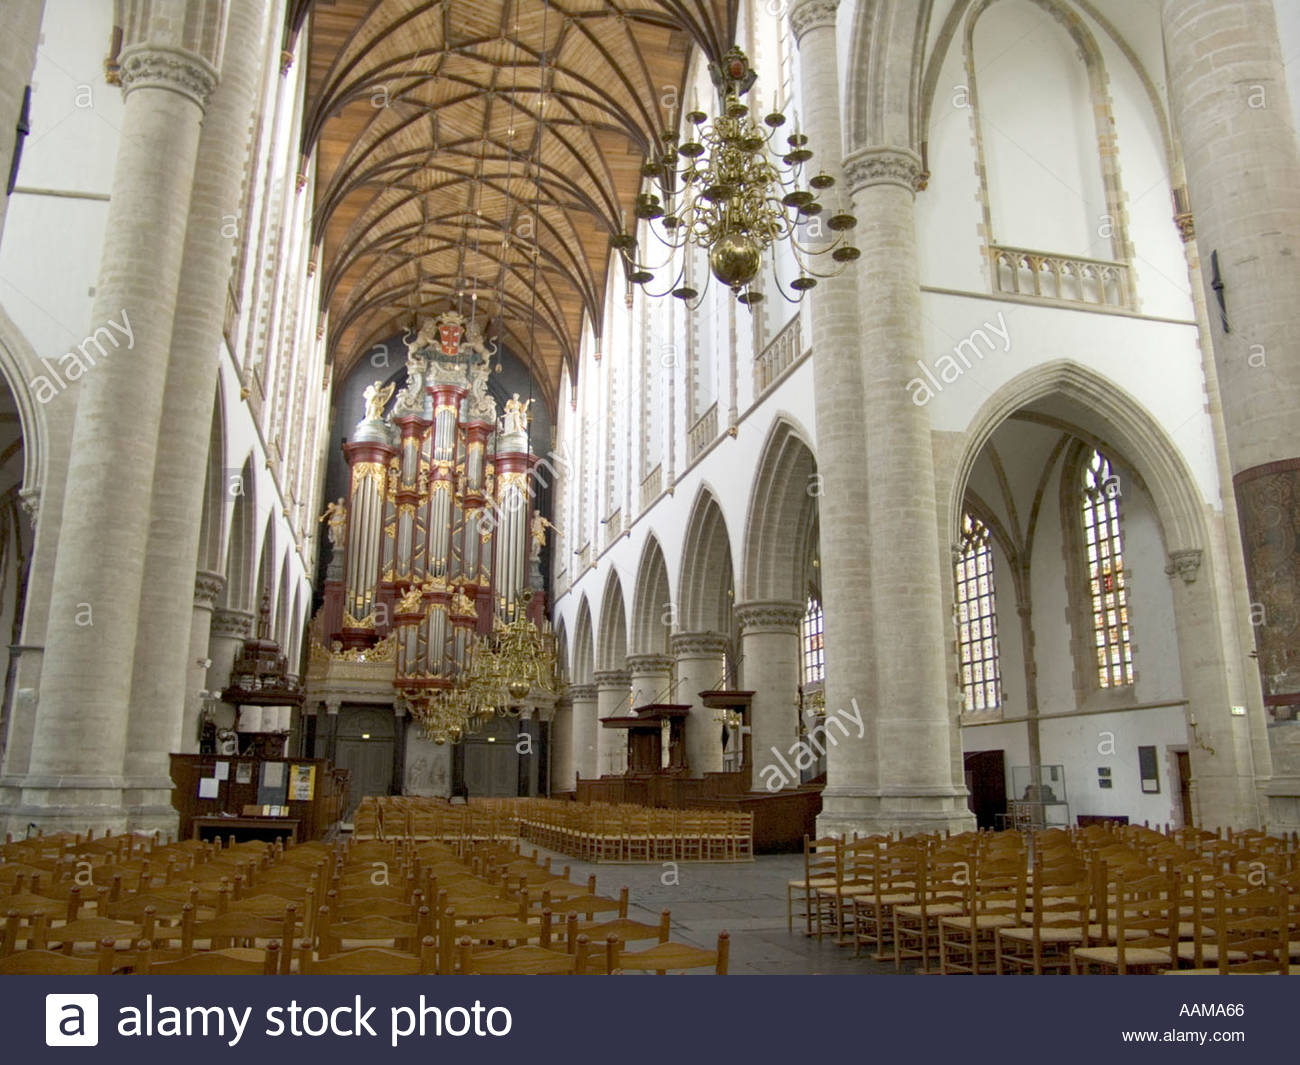 Haarlem Interieur Interior Of Saint Bavo Church In Haarlem Stock Photo